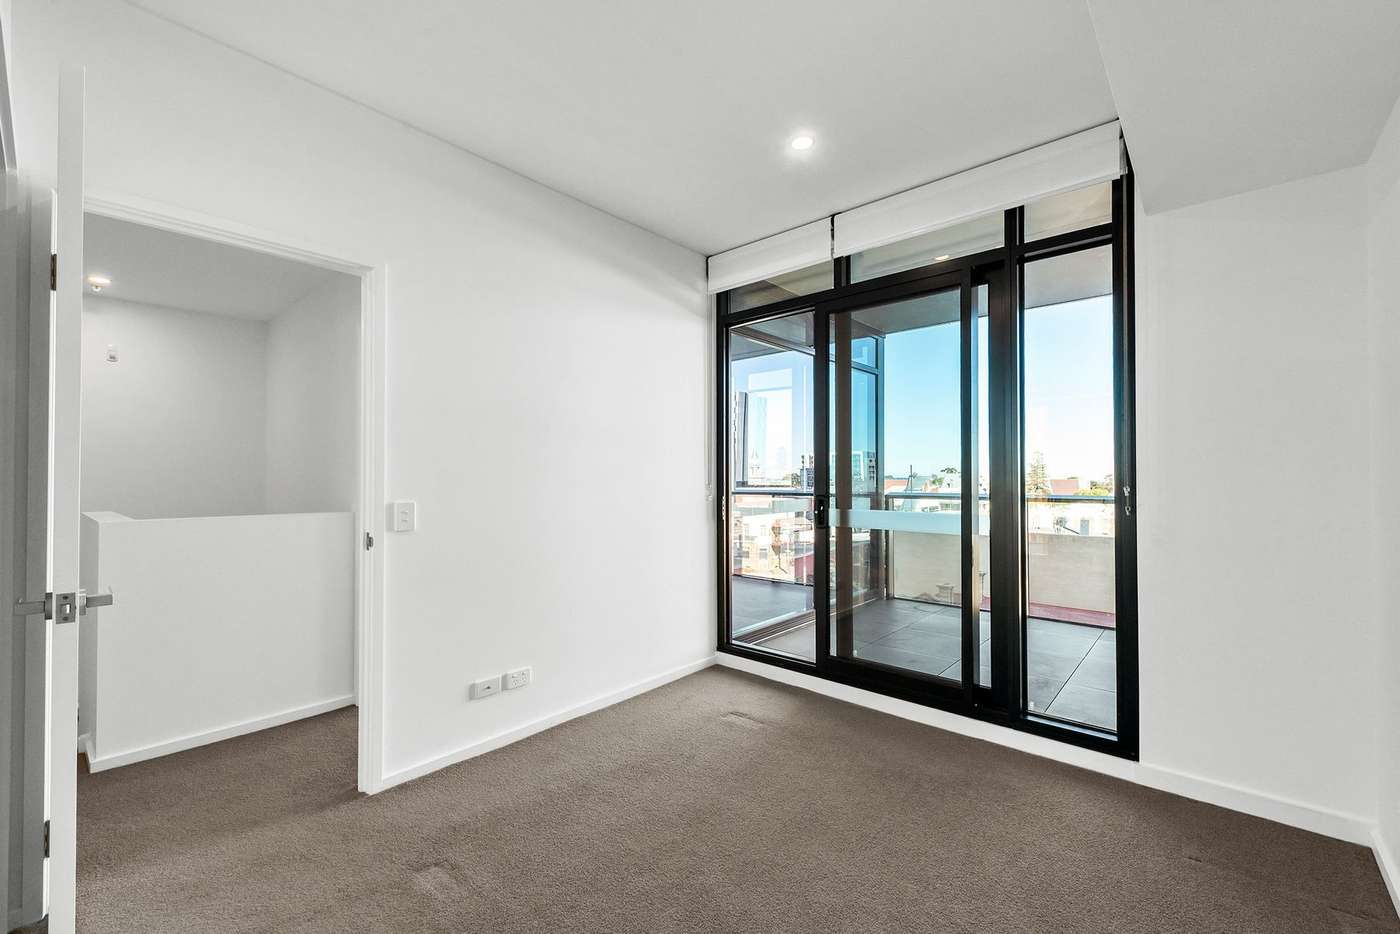 Fifth view of Homely apartment listing, 307/68 Elizabeth Street, Adelaide SA 5000